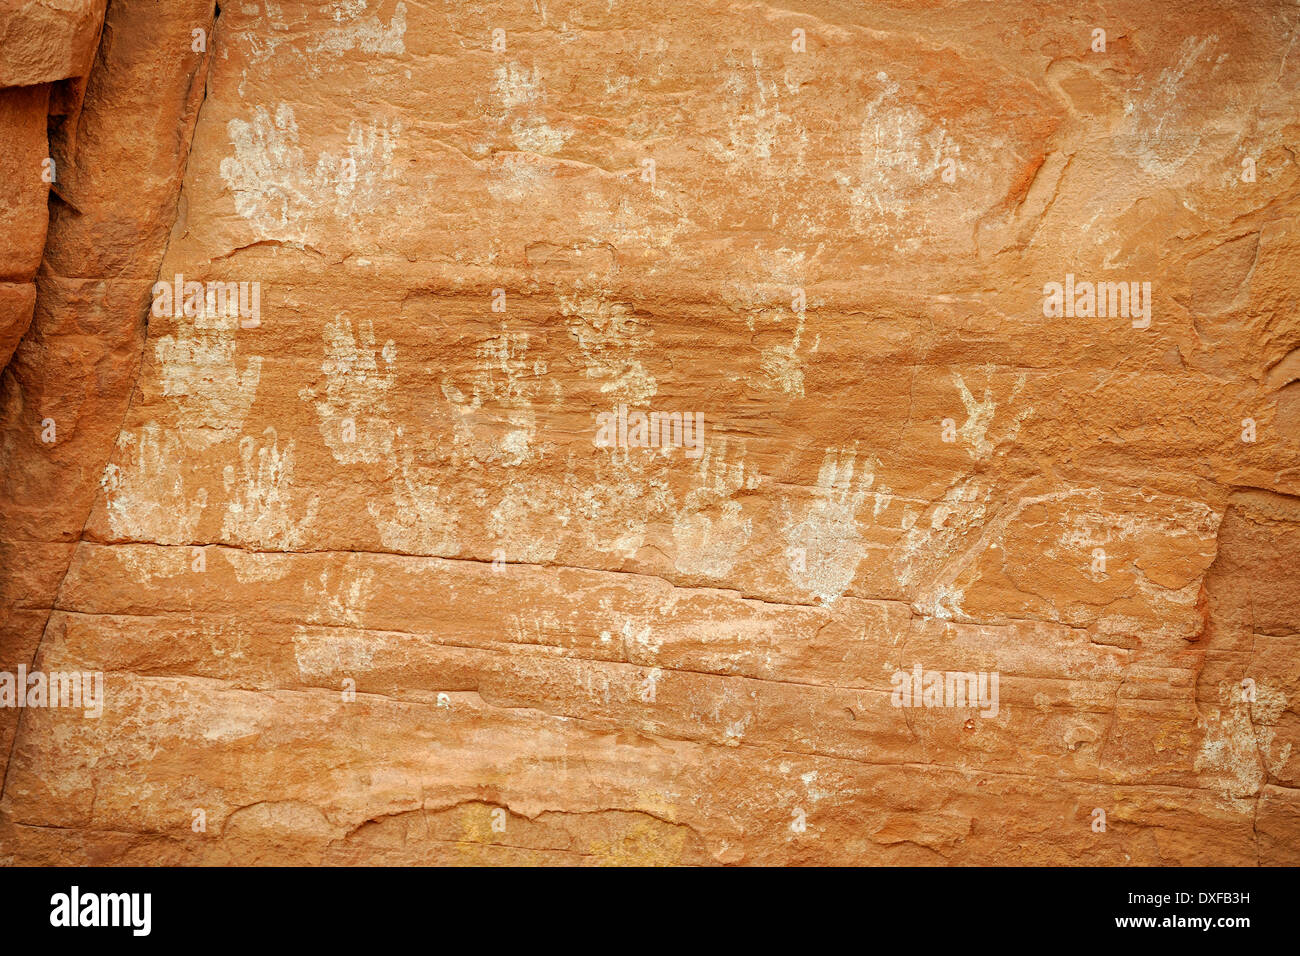 Palm prints and drawings, House of Many Hands, remains of Native Americans, about 1500 years old, Mystery Valley, Arizona, USA - Stock Image